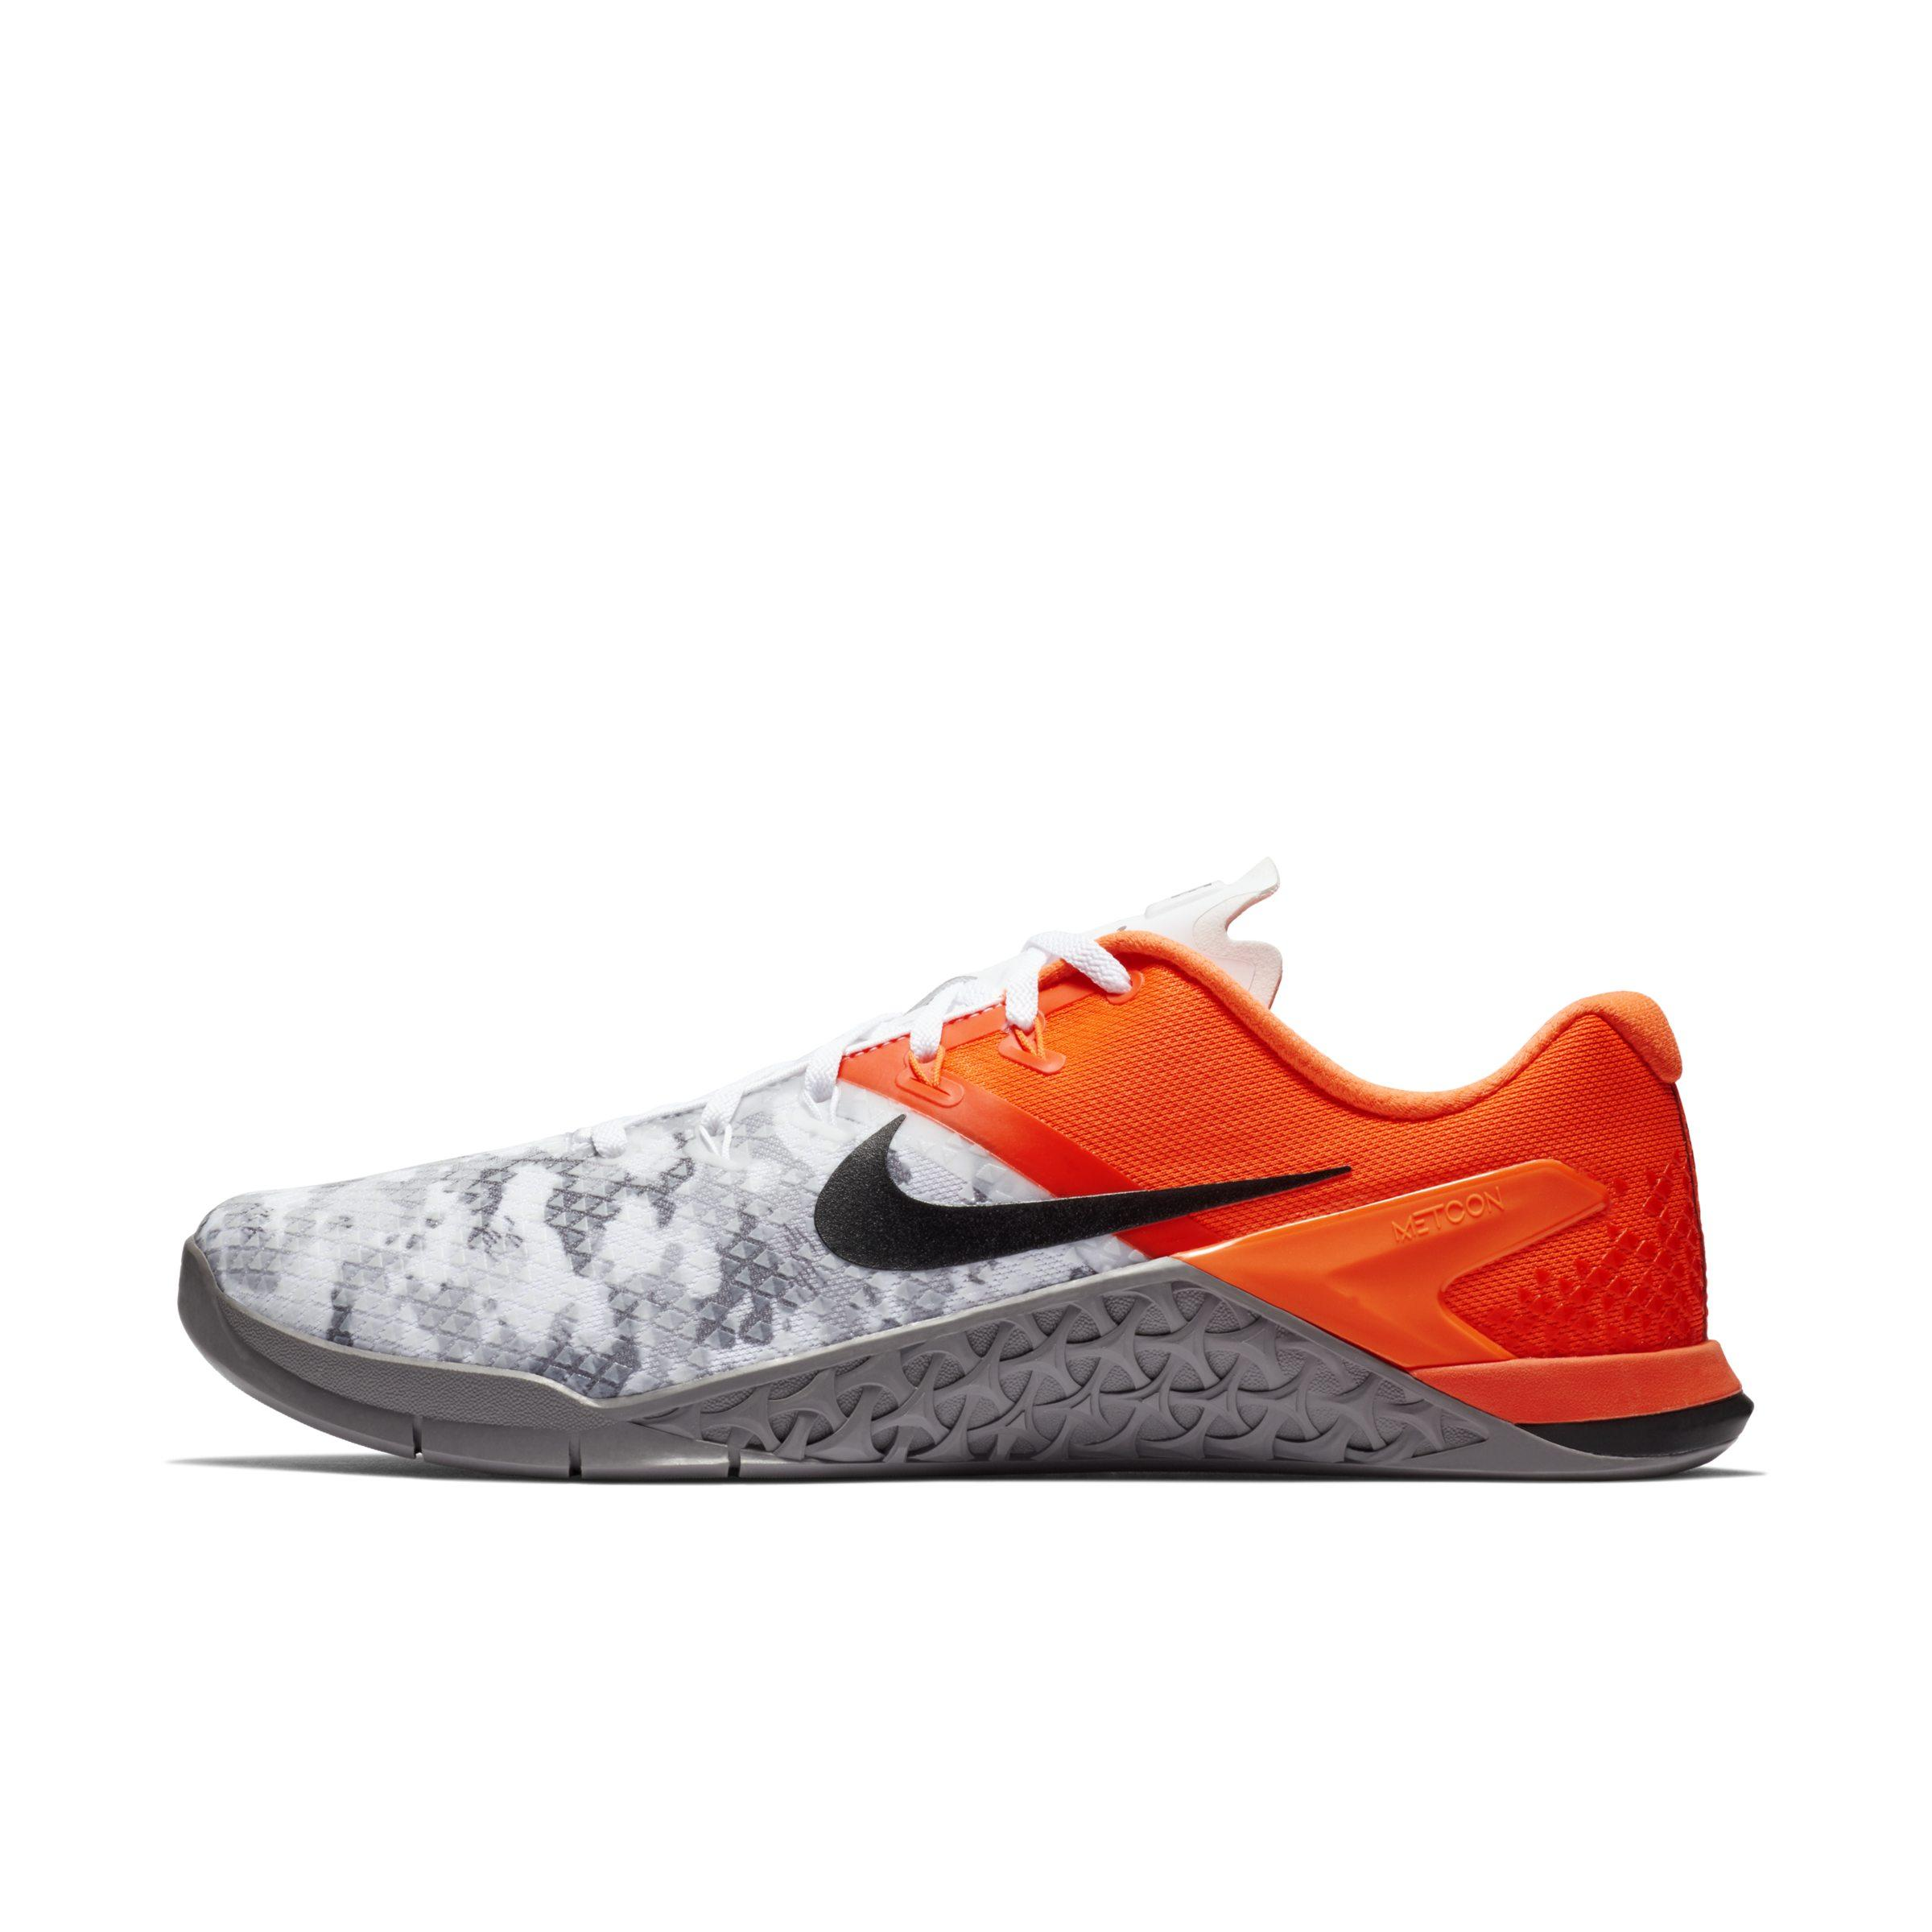 a83993115c05 Nike Metcon 4 Xd Training Shoe in Orange for Men - Lyst